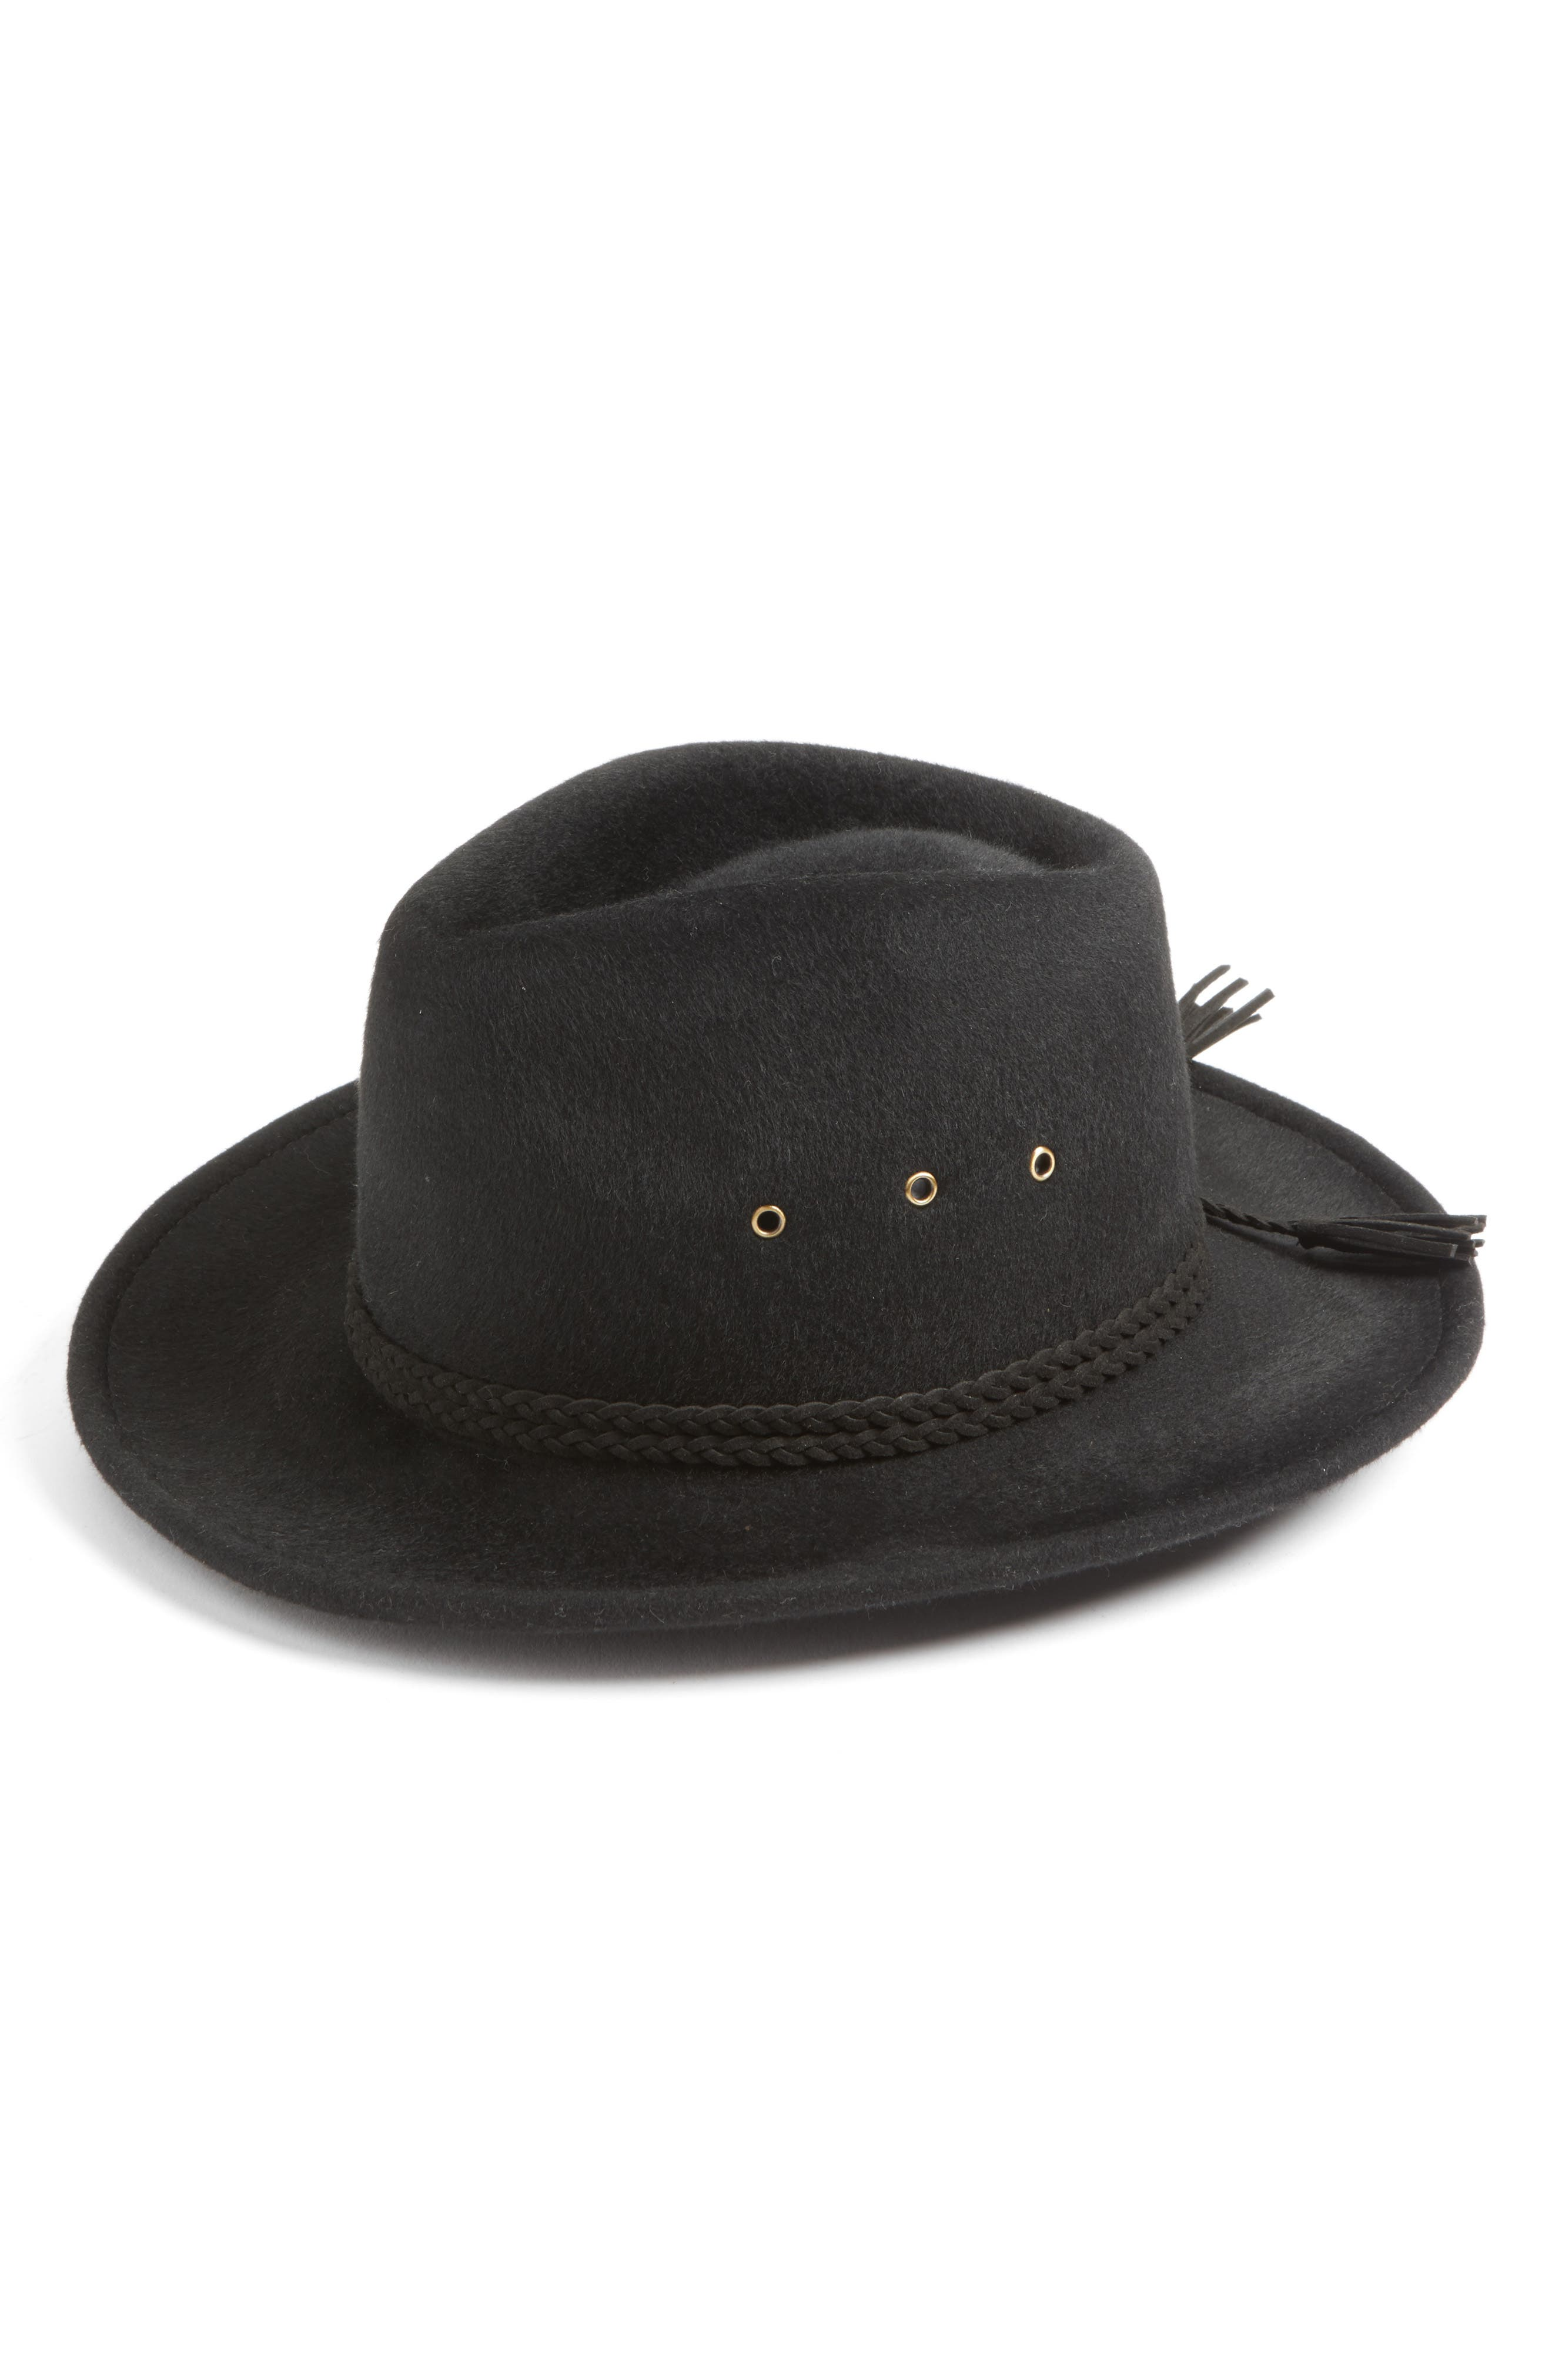 Stanwyck Wool Felt Fedora,                             Main thumbnail 1, color,                             Black